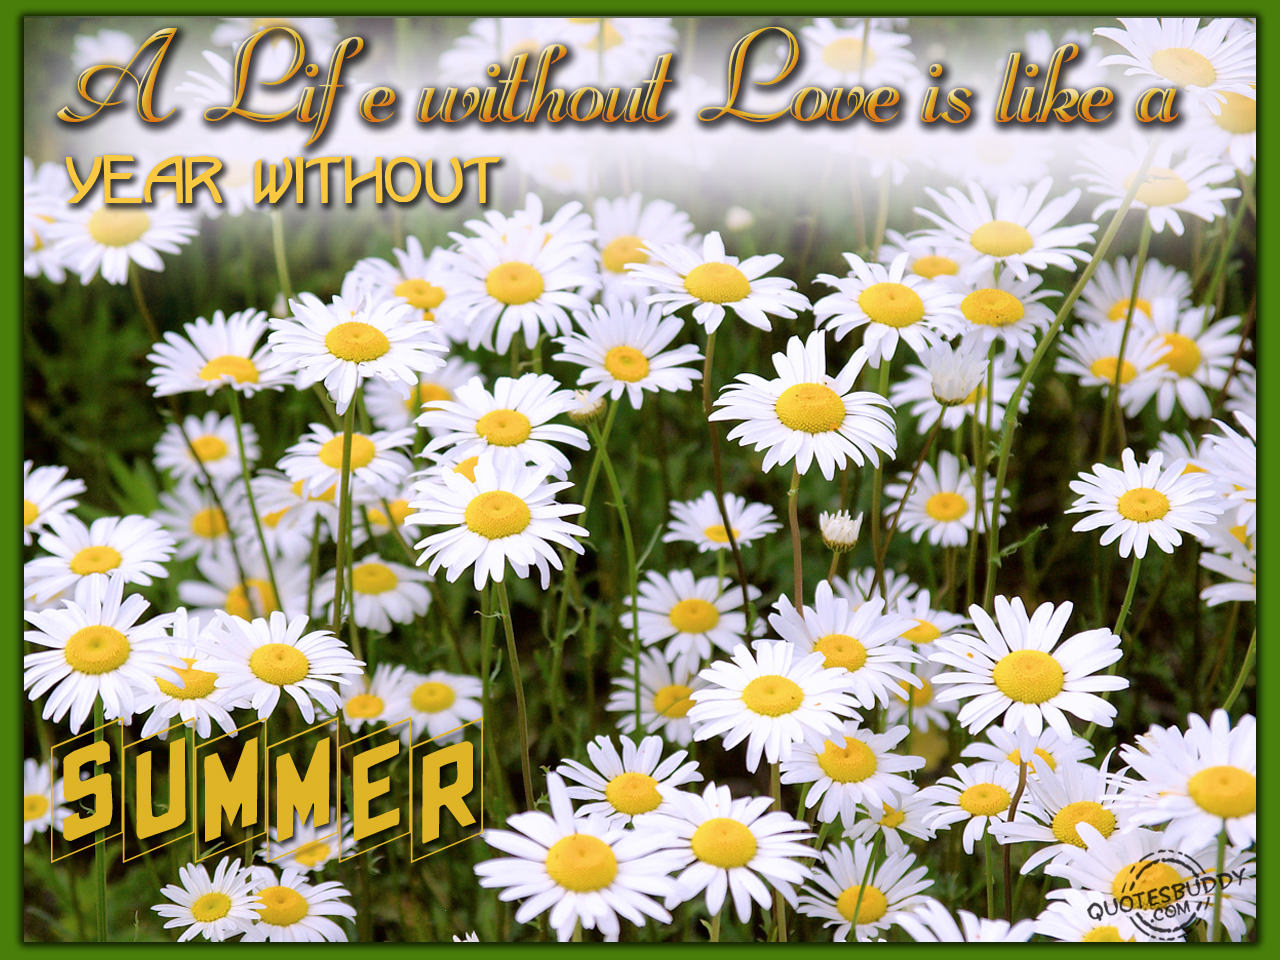 Summer Quotes: Amazing Wallpapers: Summer Quotes, Summer Qoutes, Summer